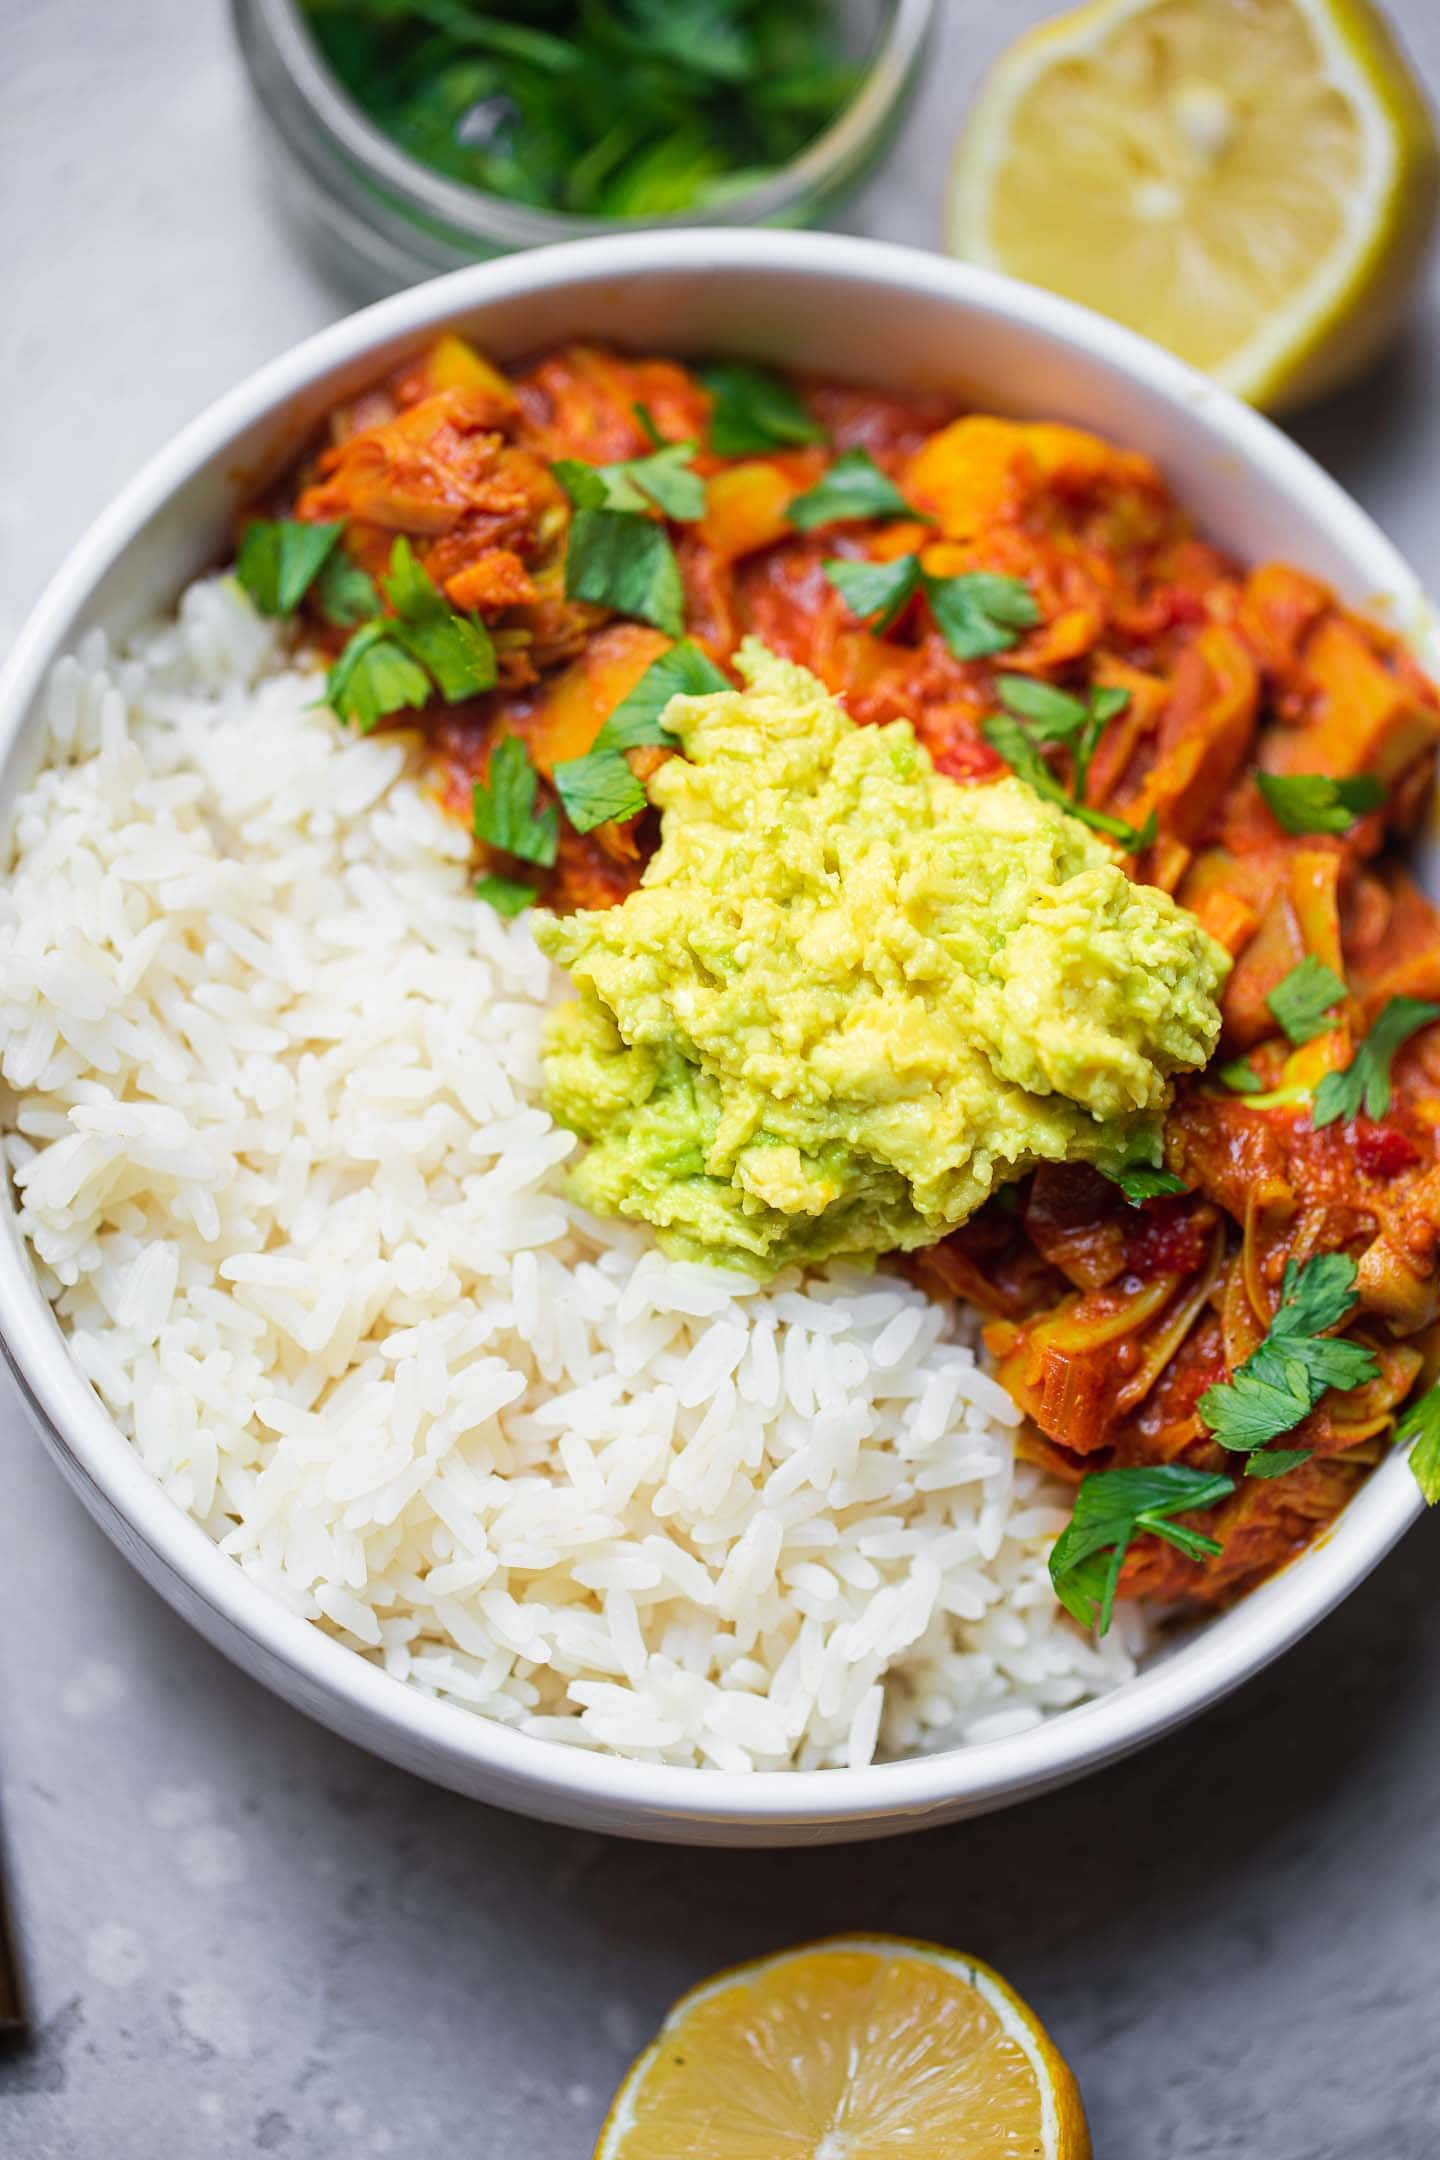 Bowl with jackfruit curry, avocado and rice